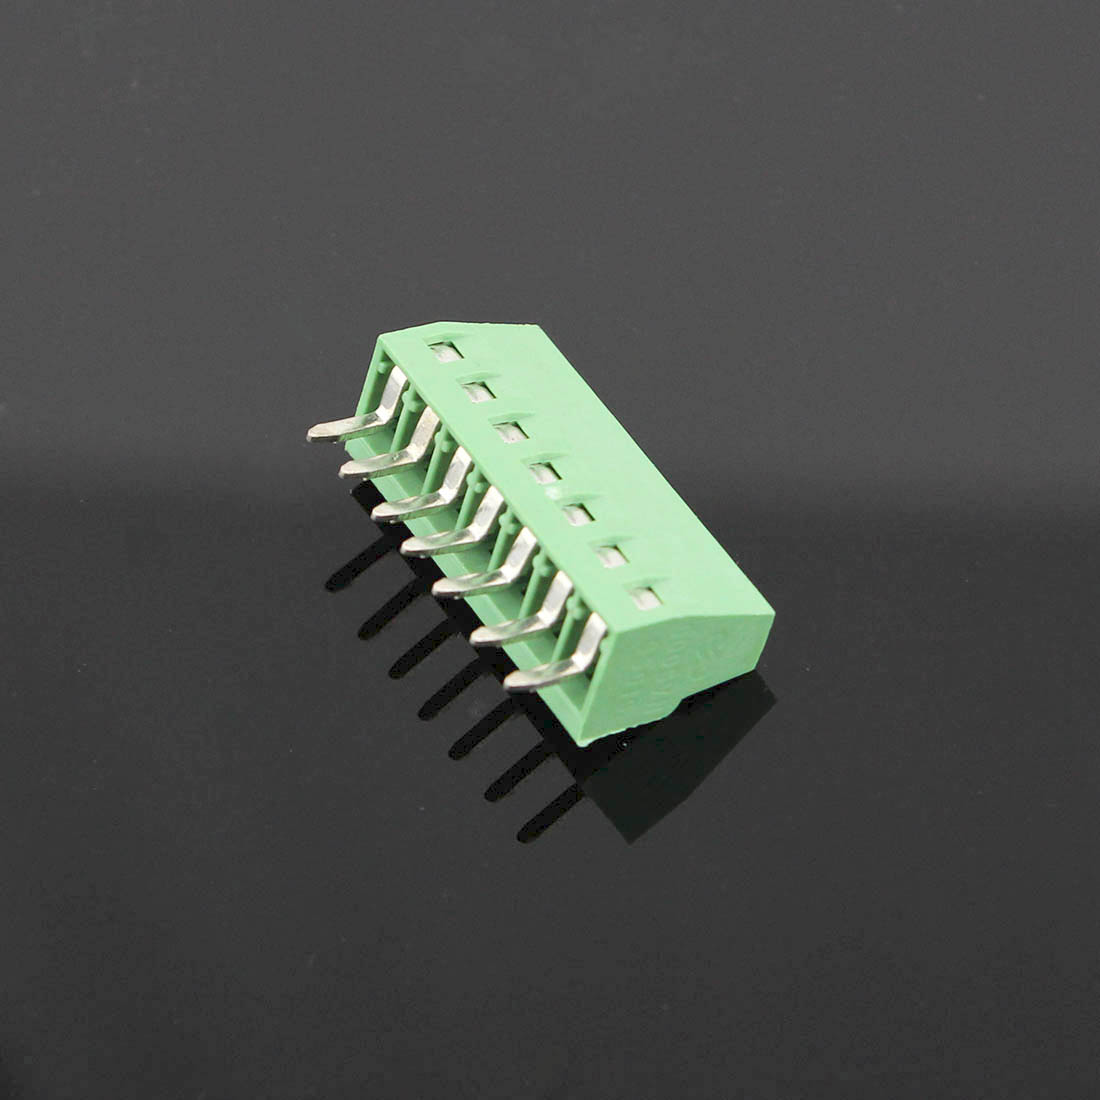 50pcs 7 pôles/7 broches 2.54mm 0.1 ''PCB connecteur de bornier à vis universel